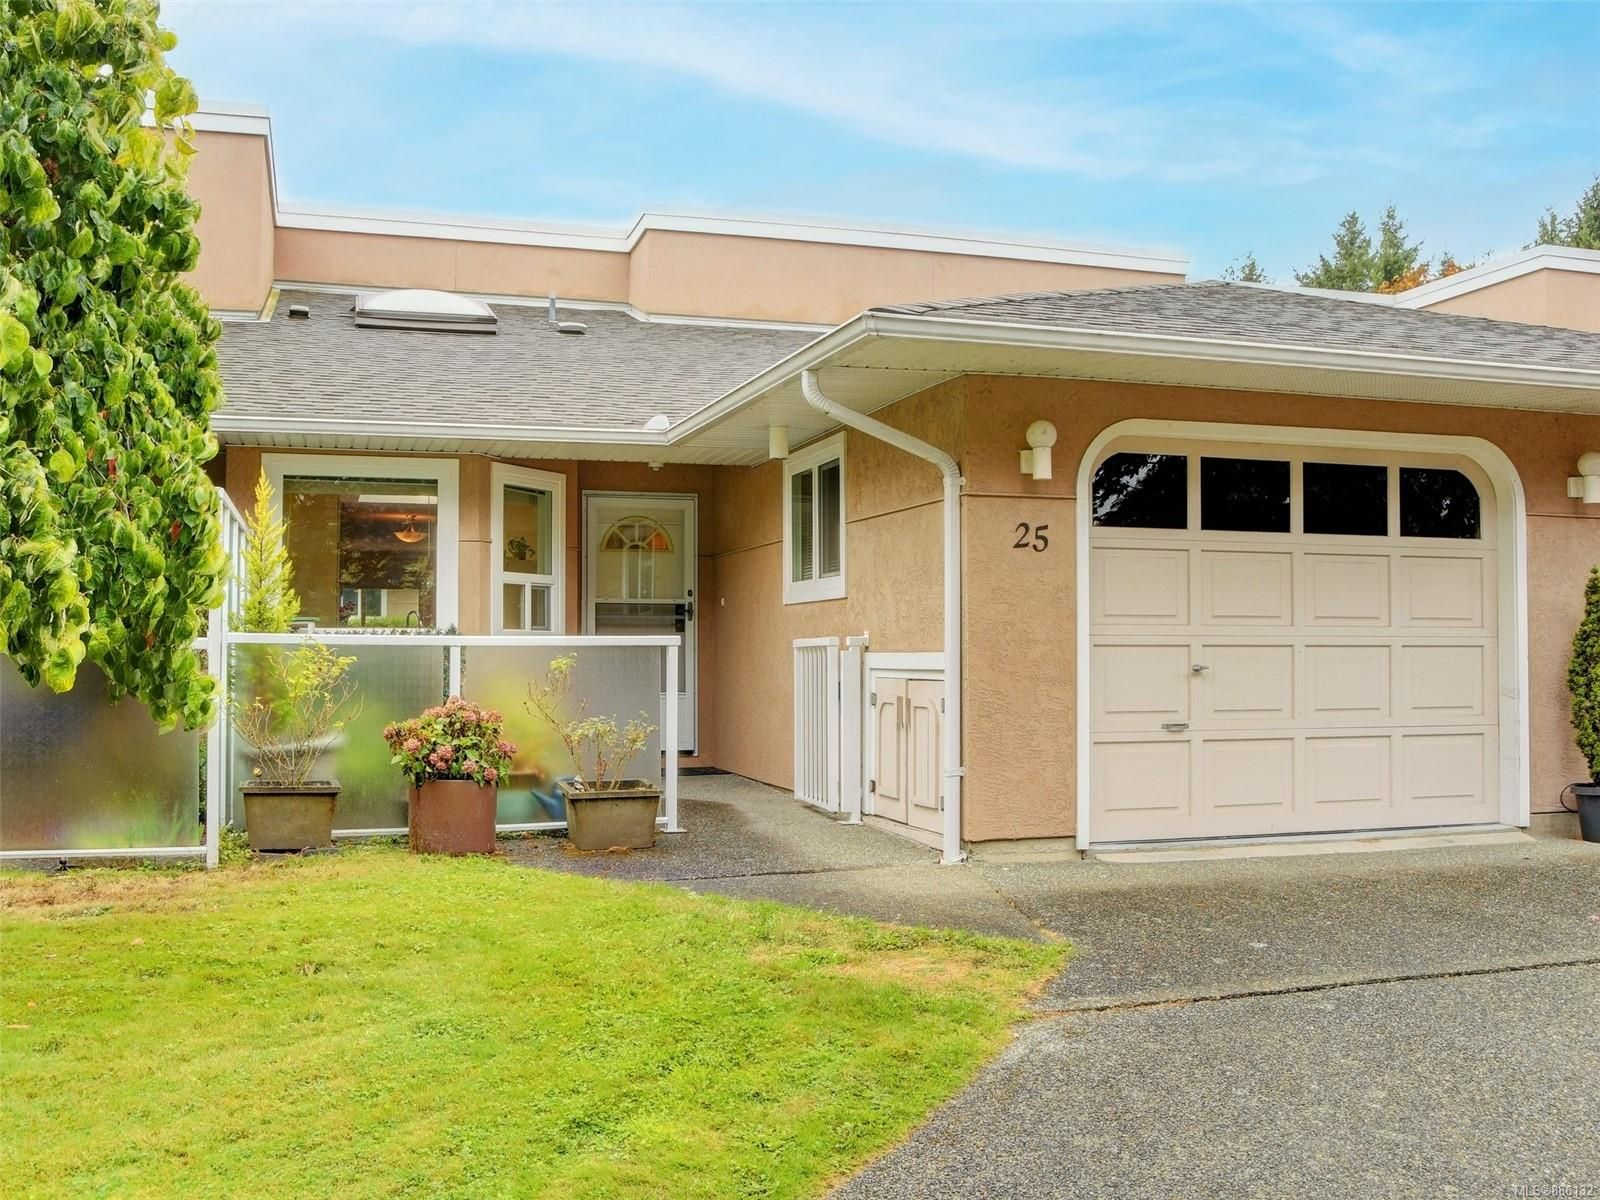 Main Photo: 25 3049 Brittany Dr in : Co Sun Ridge Row/Townhouse for sale (Colwood)  : MLS®# 886132